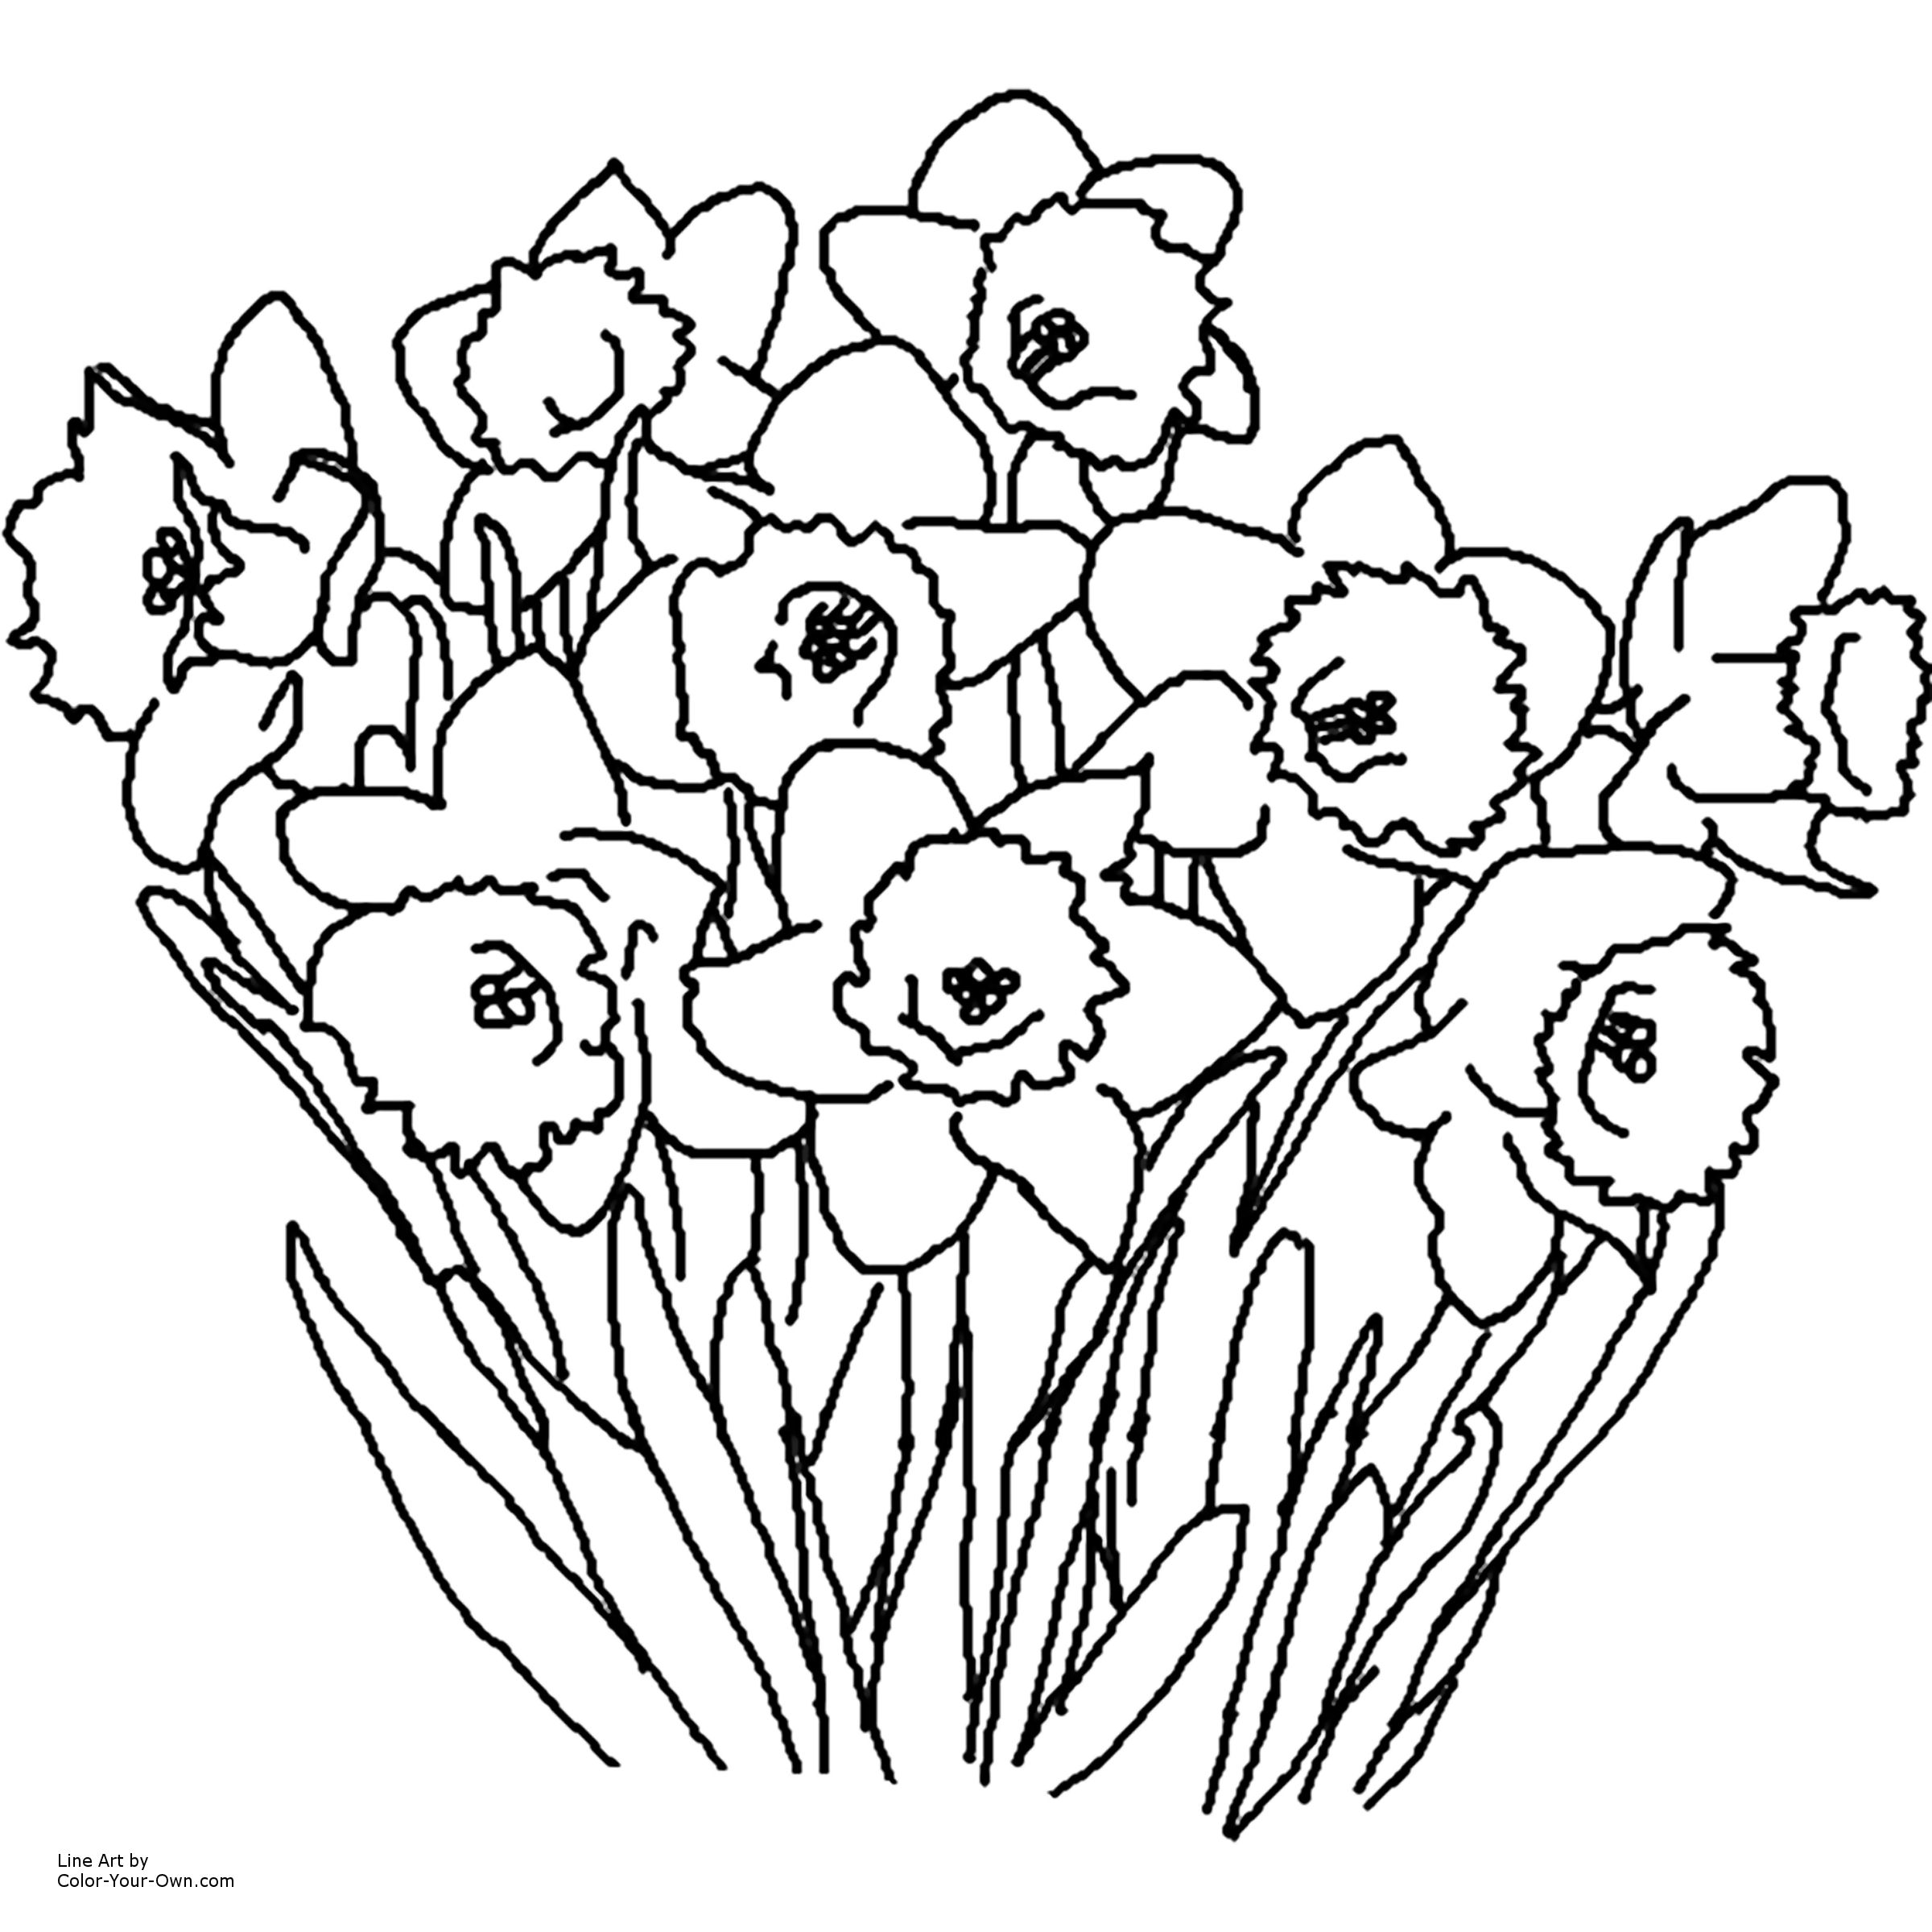 click here for the free printable coloring page for 85 by 11 inch paper then click print on your browser - Spring Flower Coloring Pages